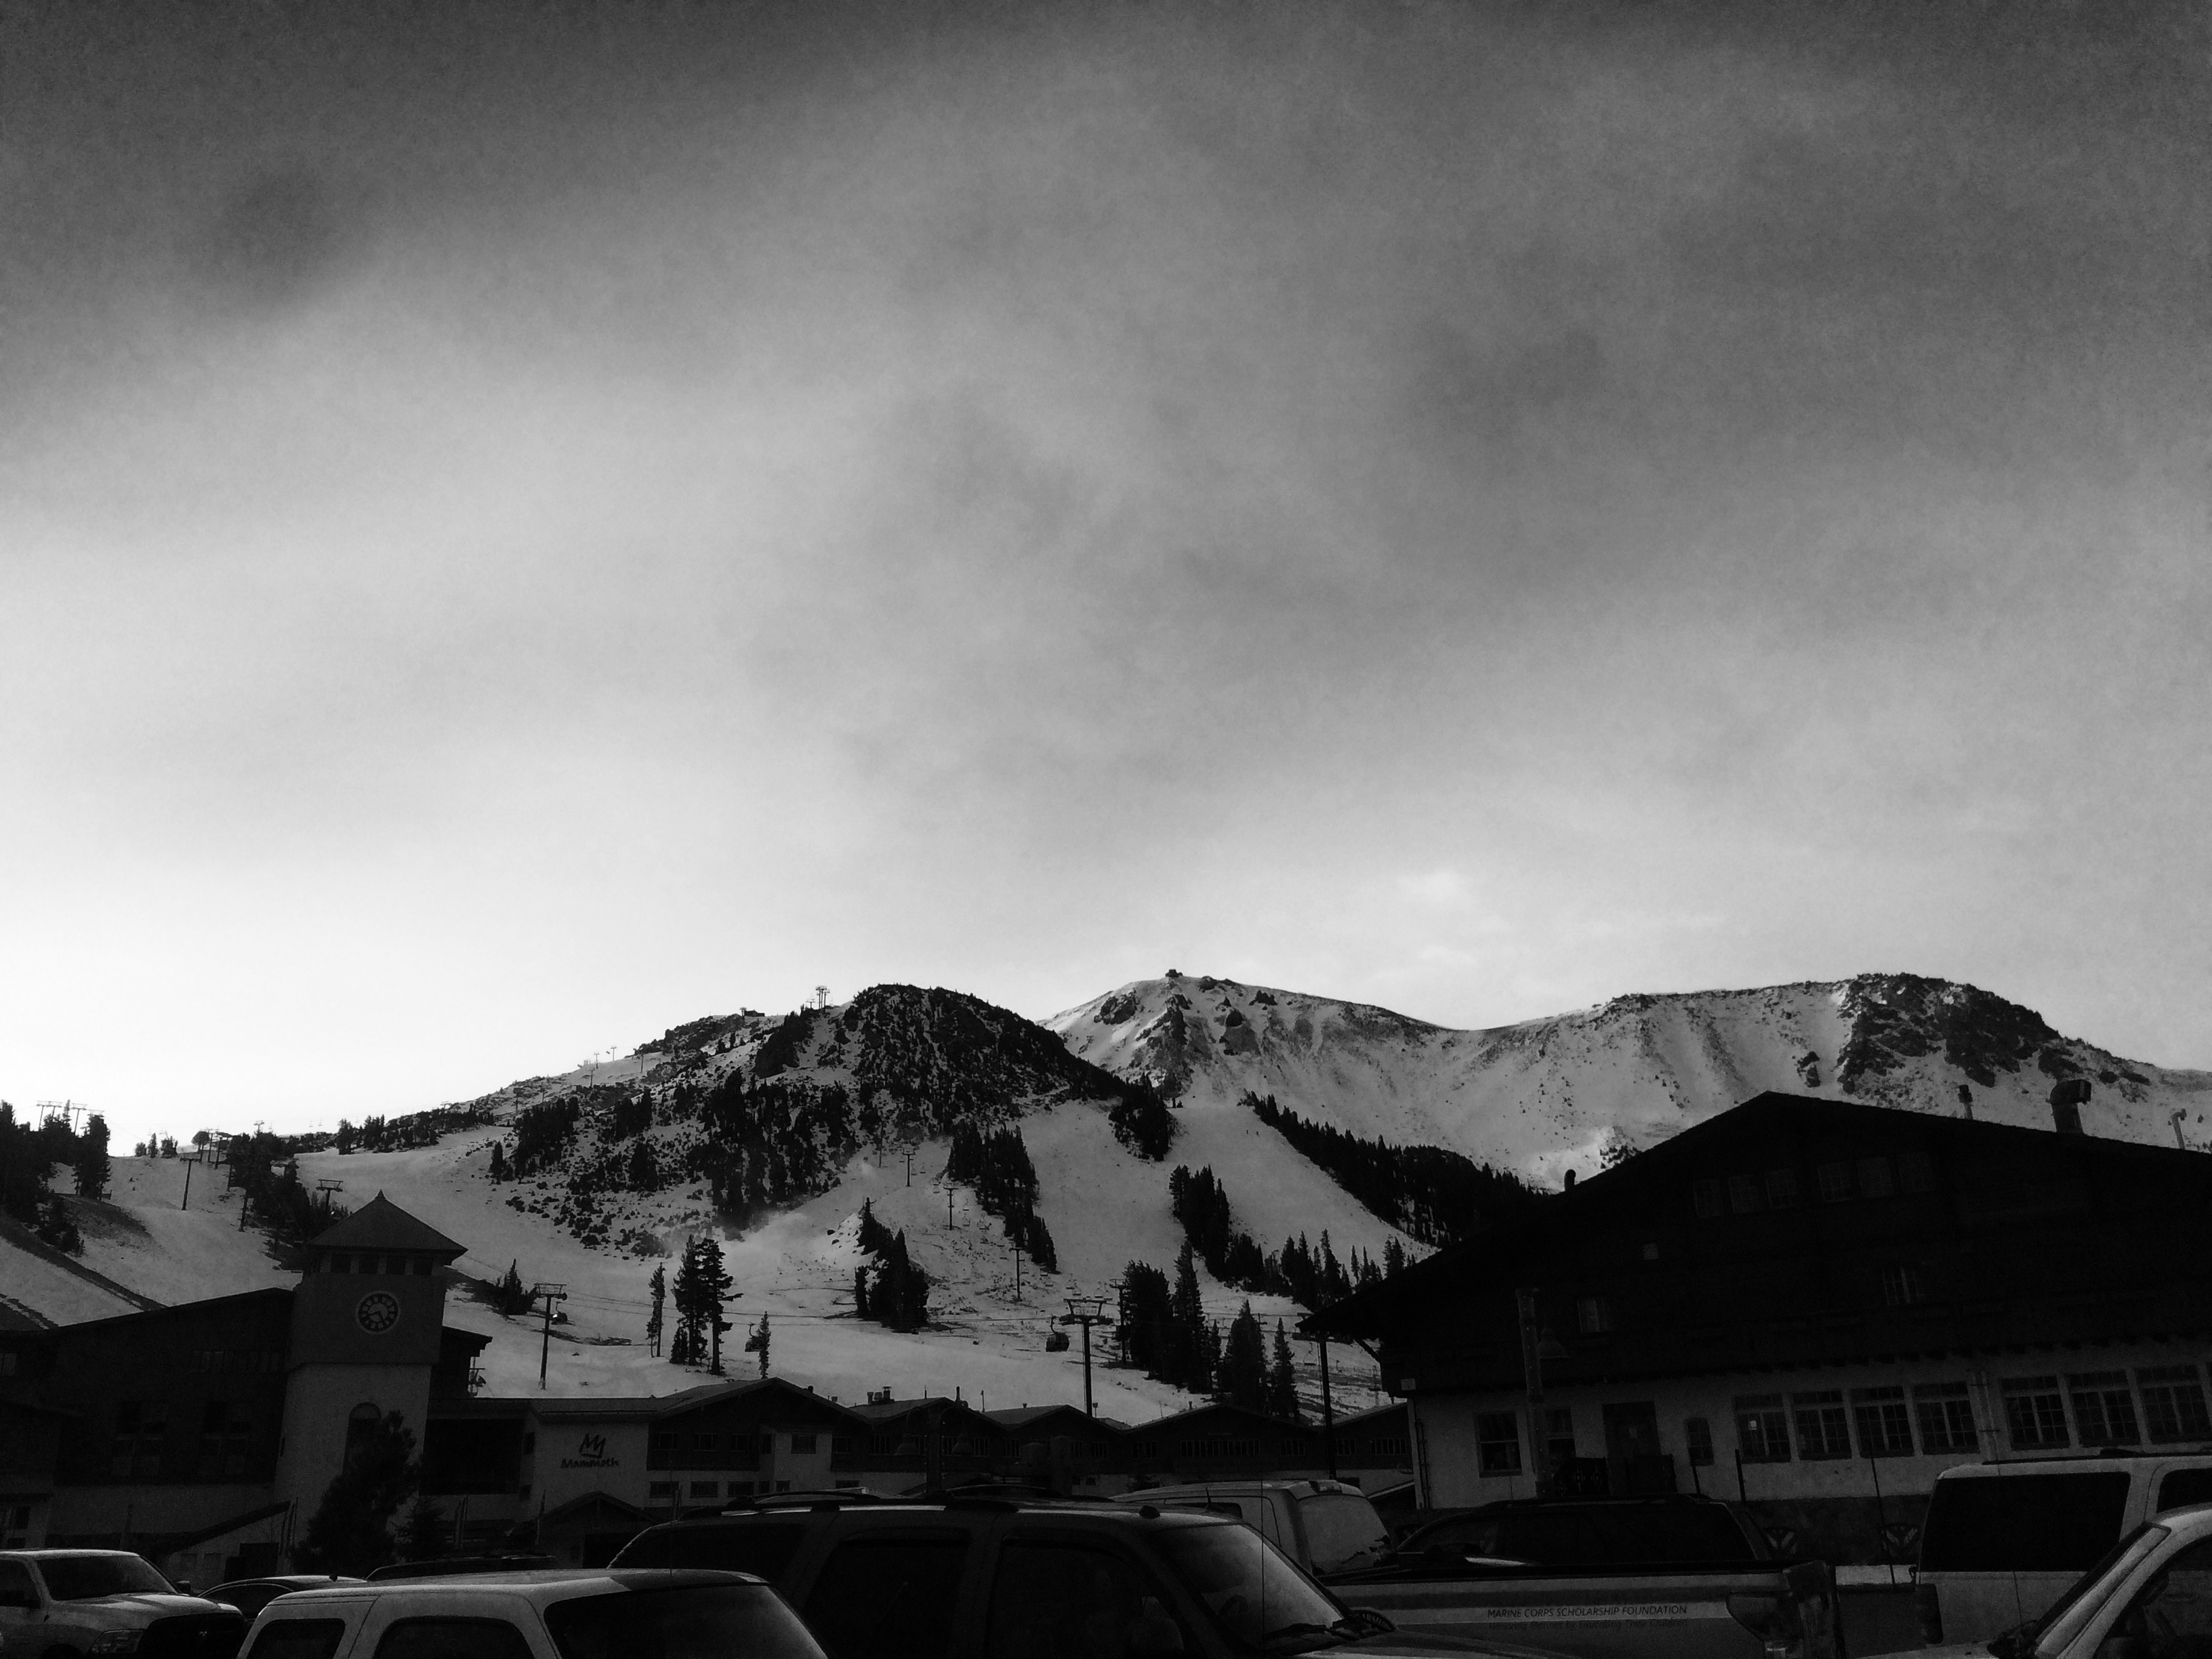 Mammoth looking good from the parking lot